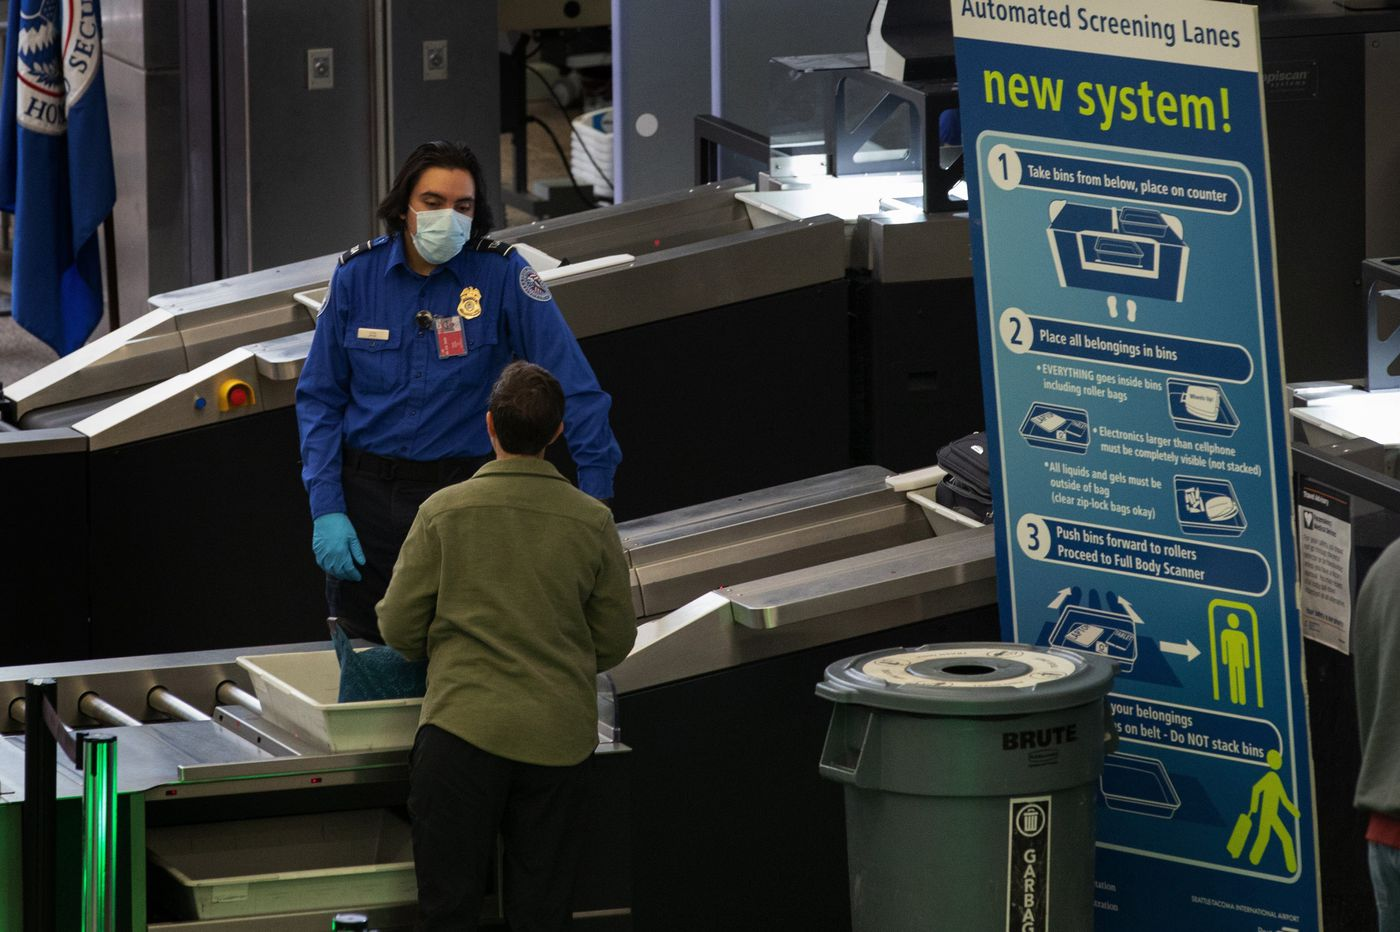 How airport screenings have changed since the pandemic